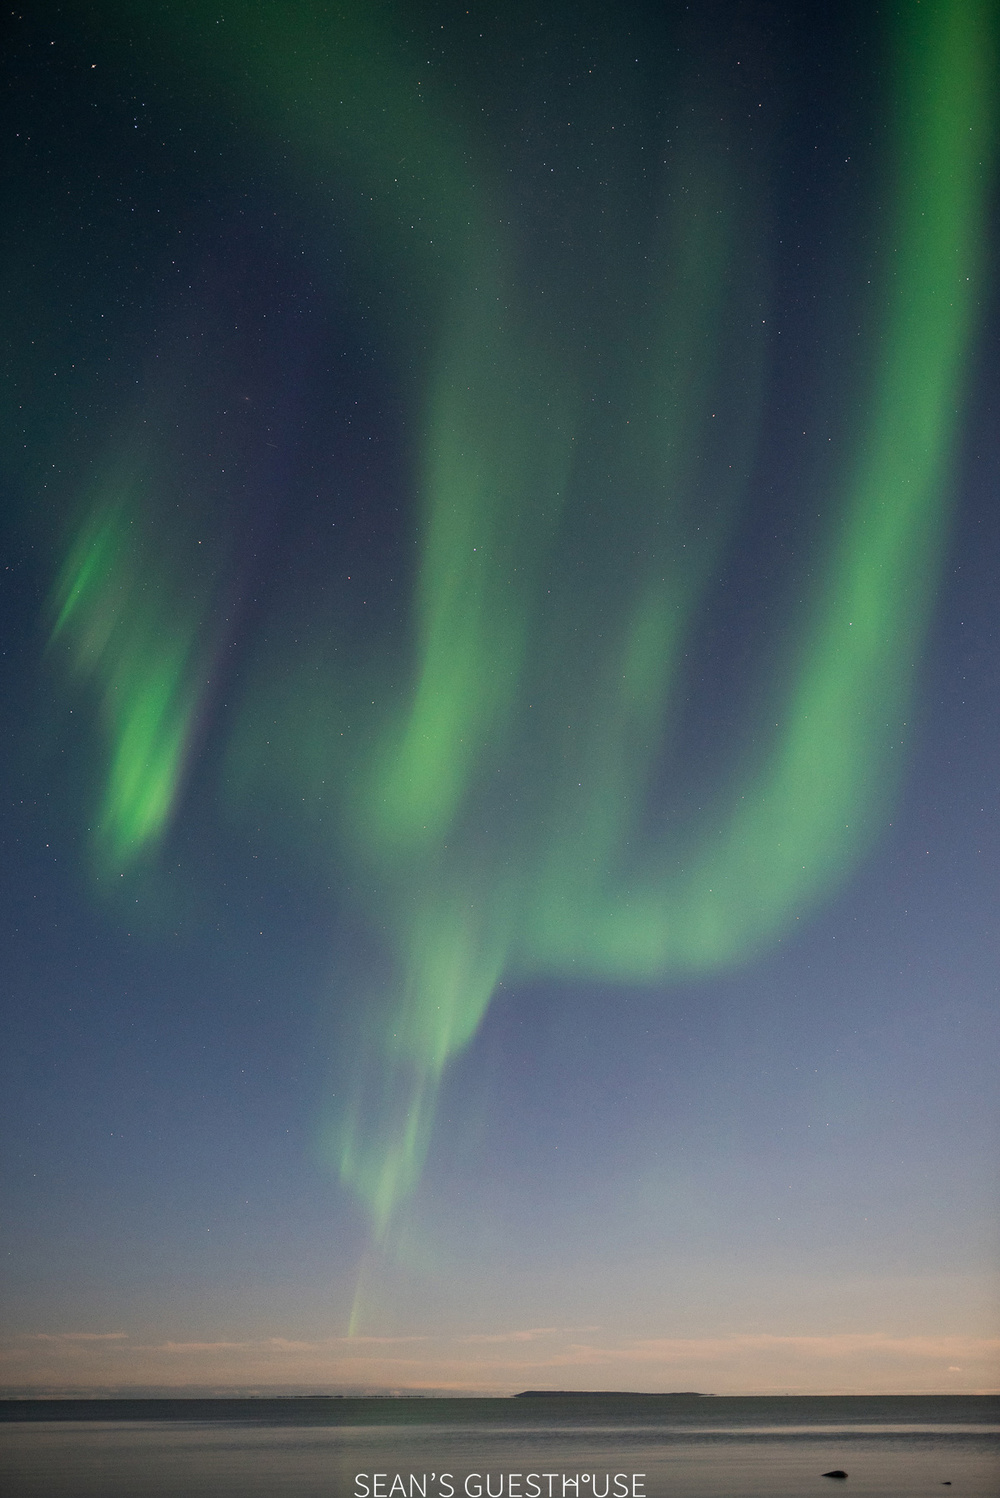 Sean's Guesthouse - Yellowknife Northern Lights Chasing - 5.jpg